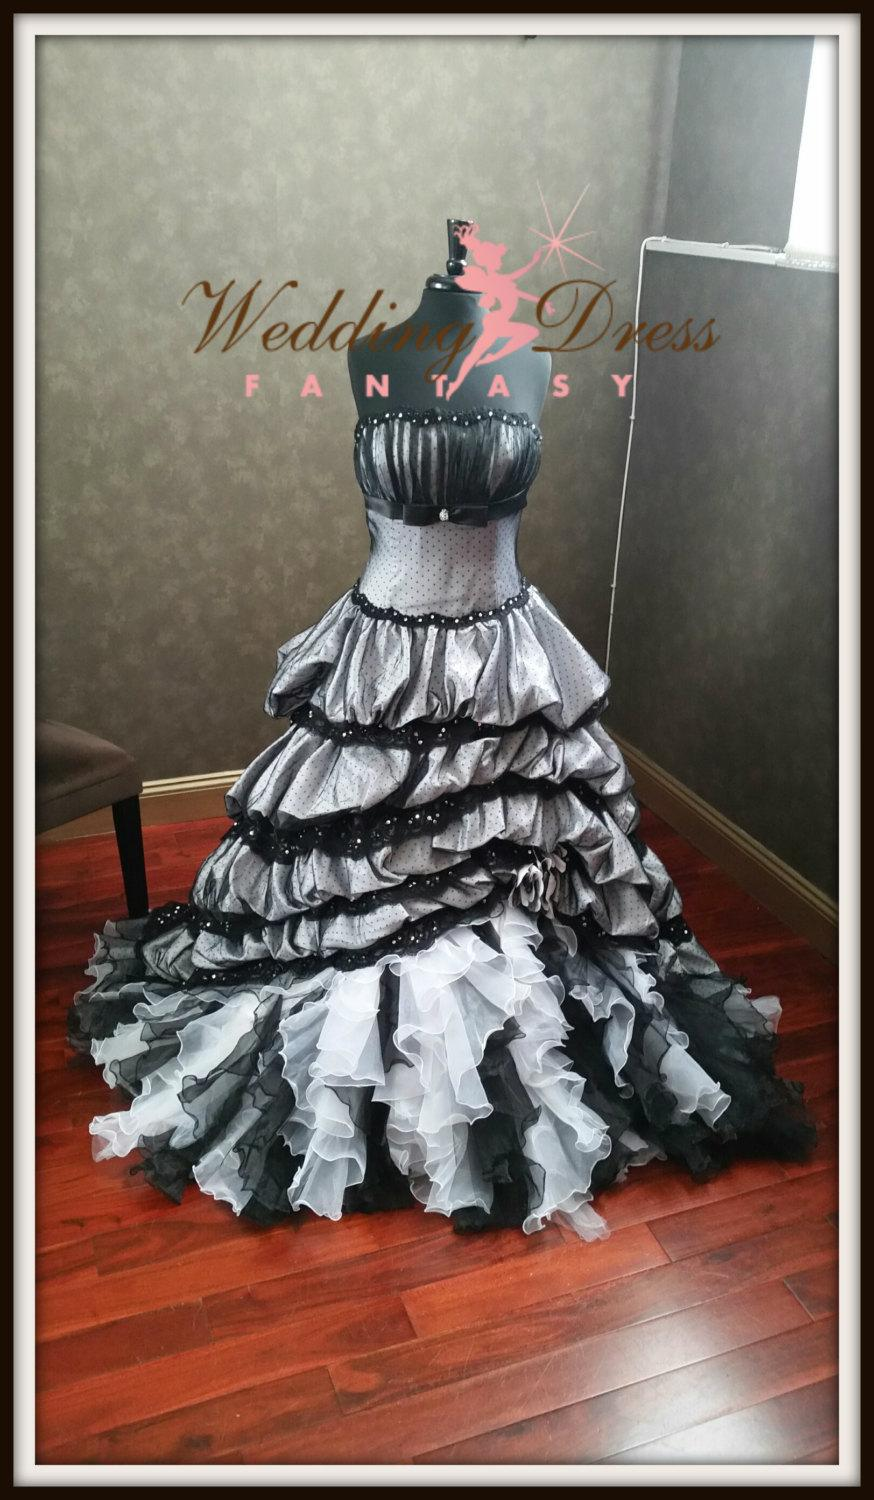 Wedding - Stunning Victorian Gothic Wedding Dress in Black and White Strapless with Ruffles